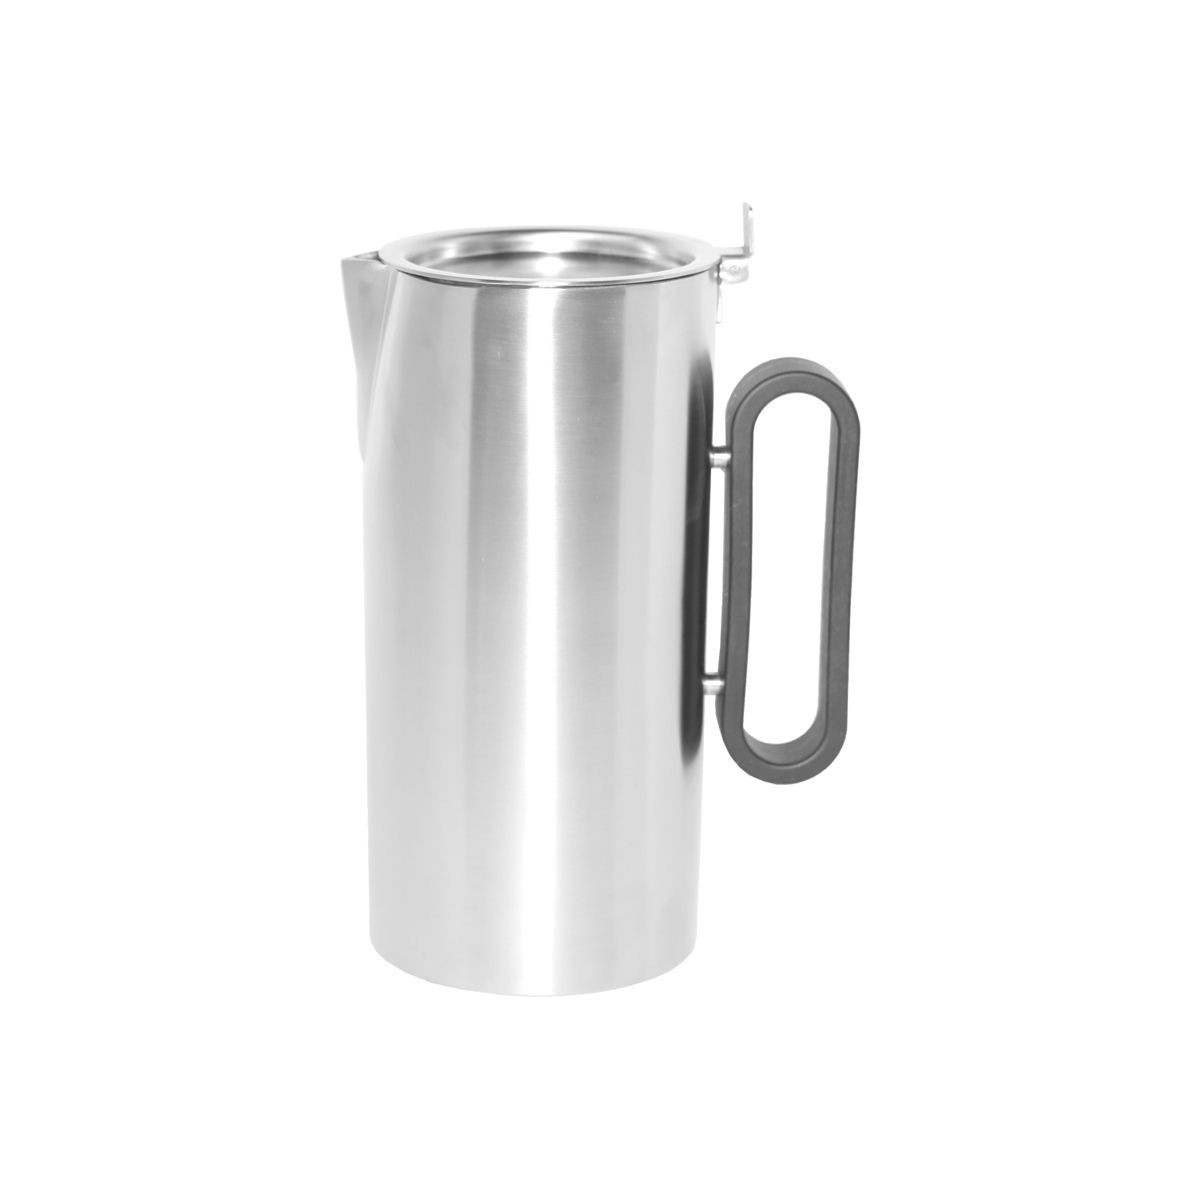 Service Ideas SB-22 SteelForme Beverage Server, 60-oz